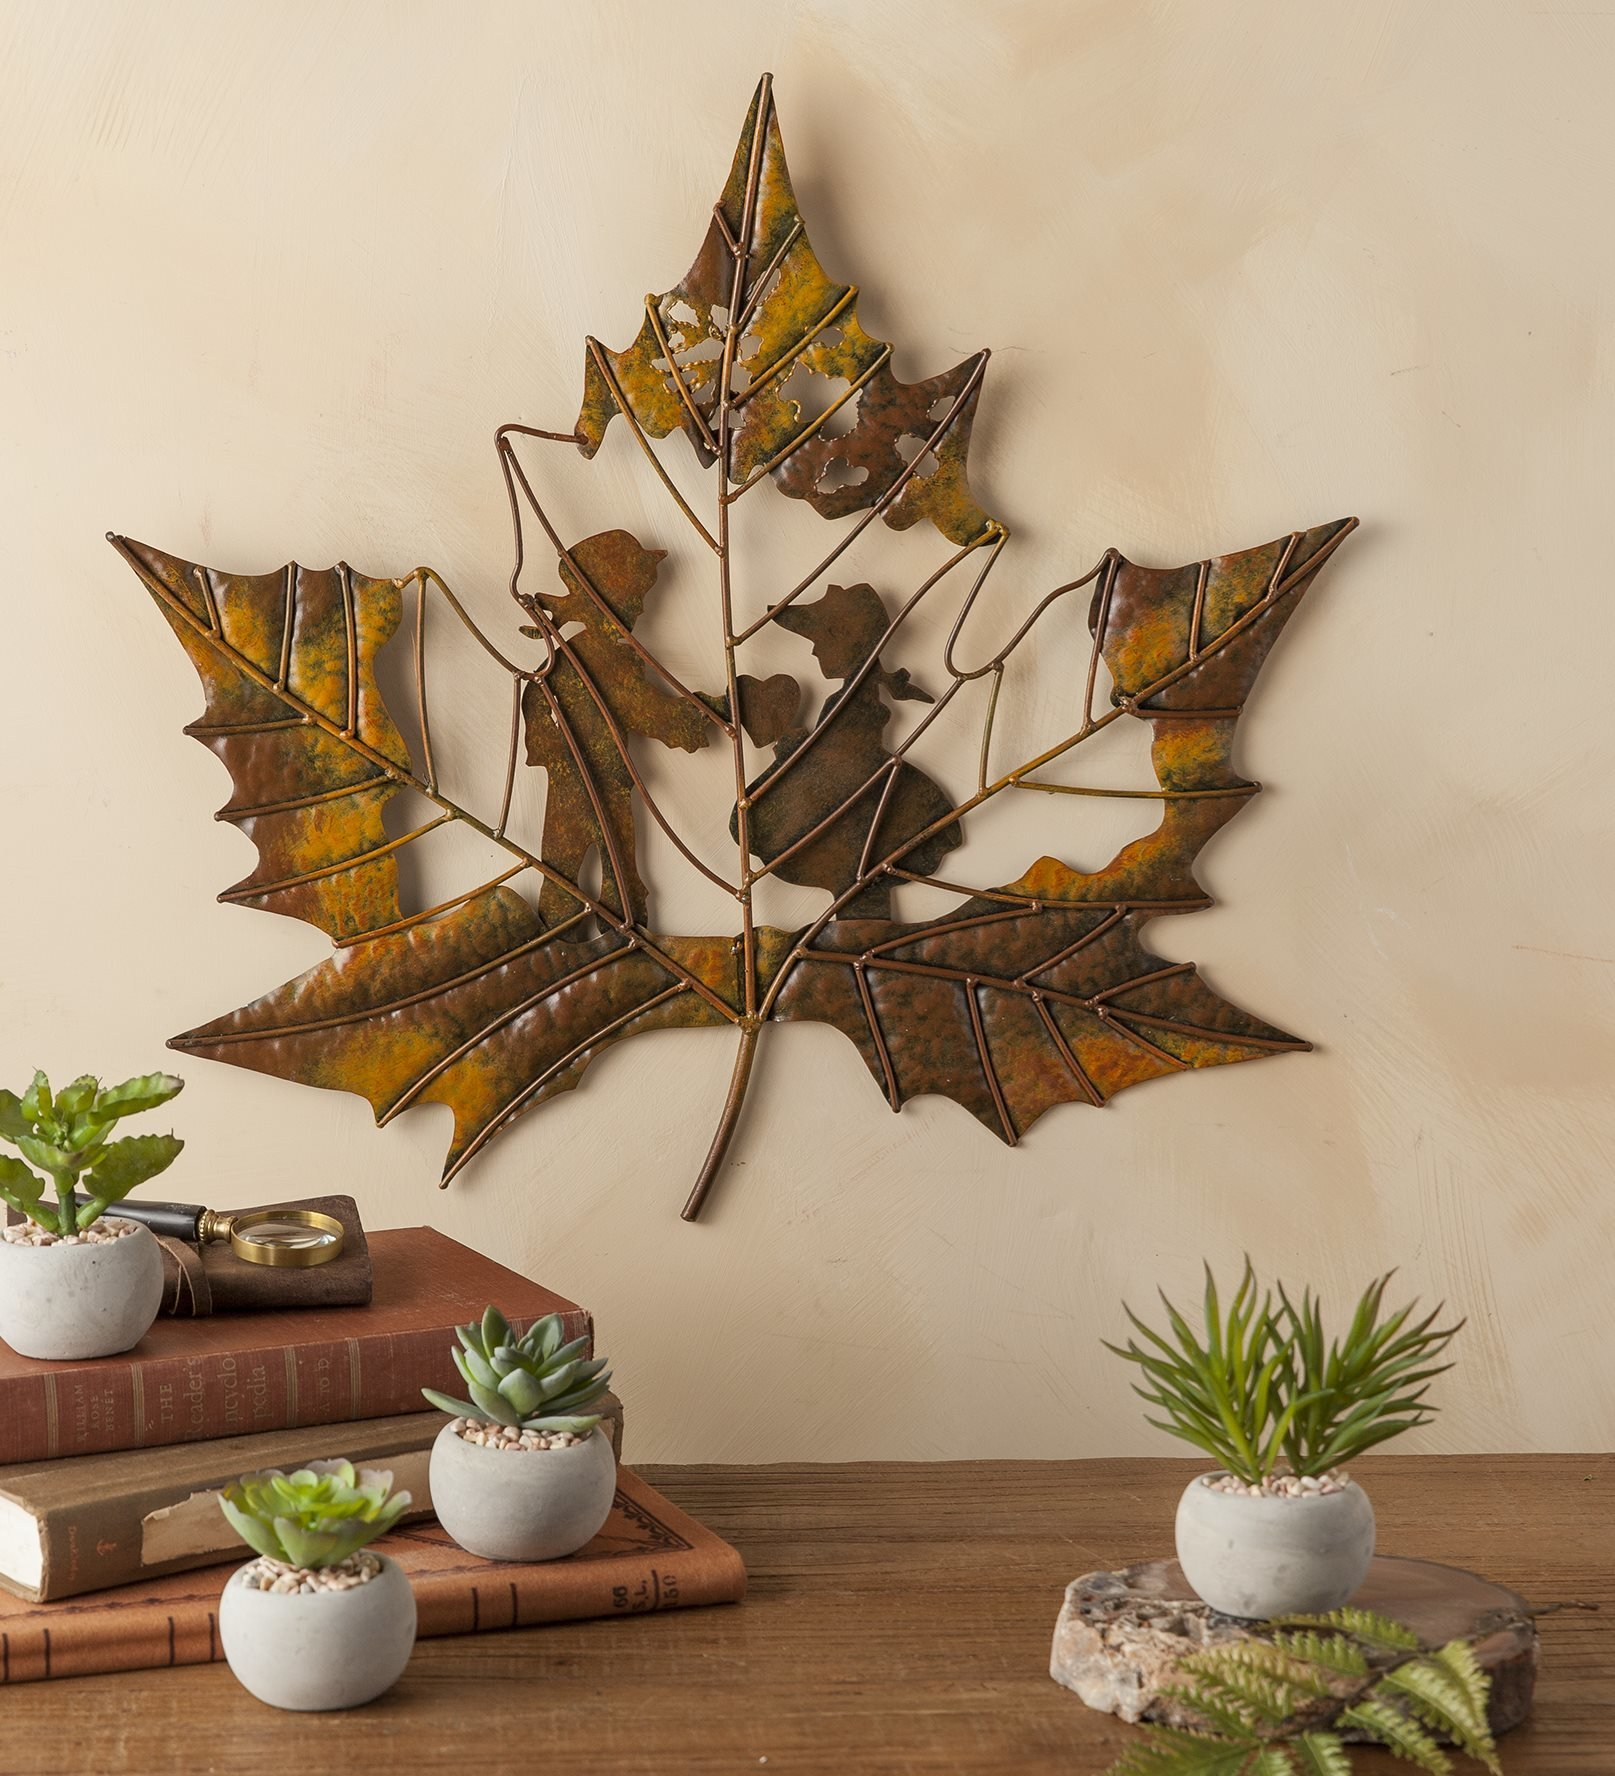 Wayfair Intended For Metal Leaf Wall Decor By Red Barrel Studio (Gallery 15 of 20)